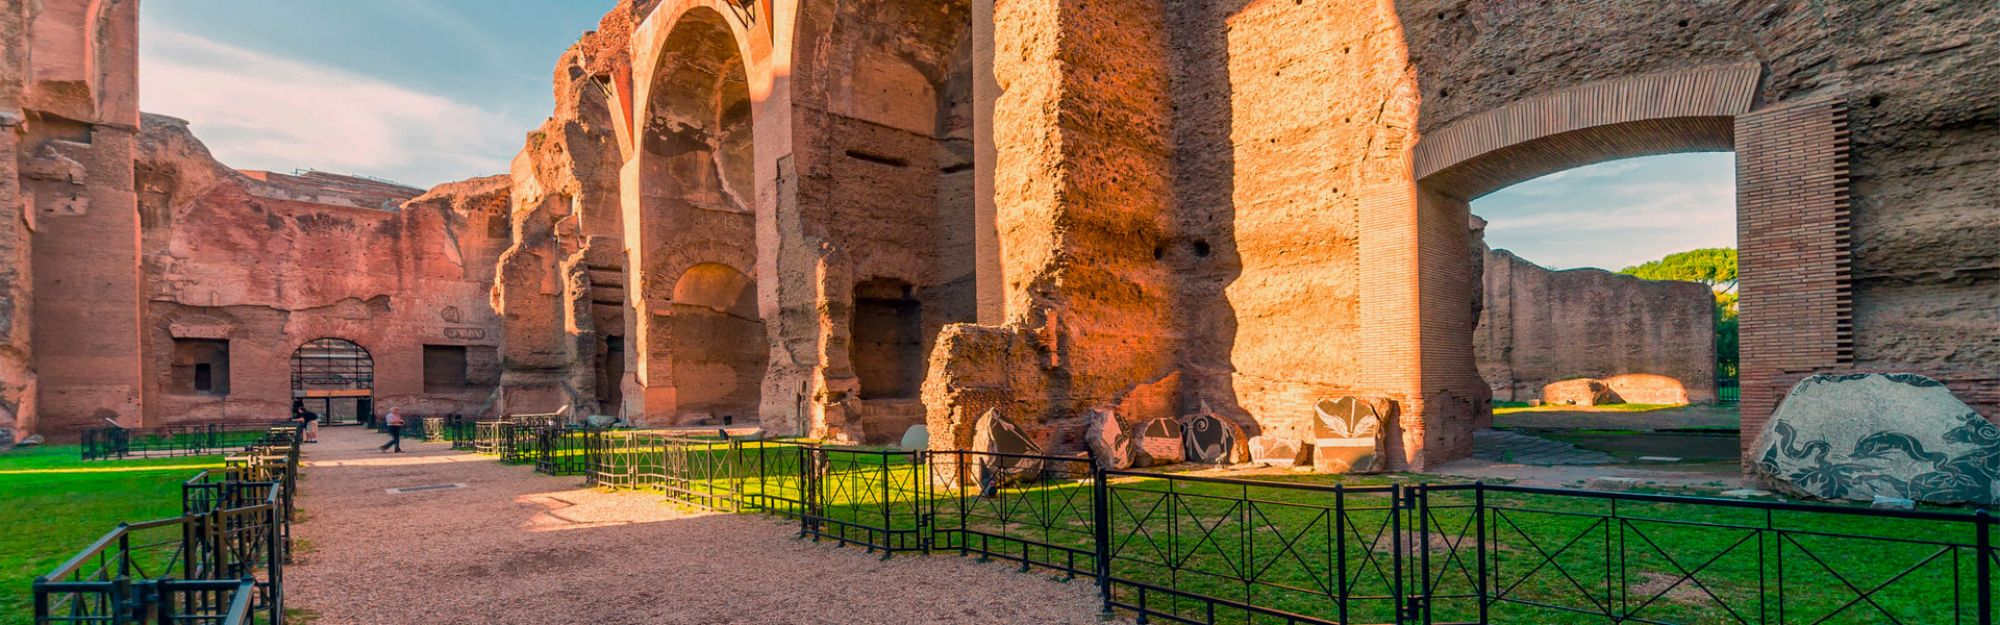 Rome Catacombs Tour Package